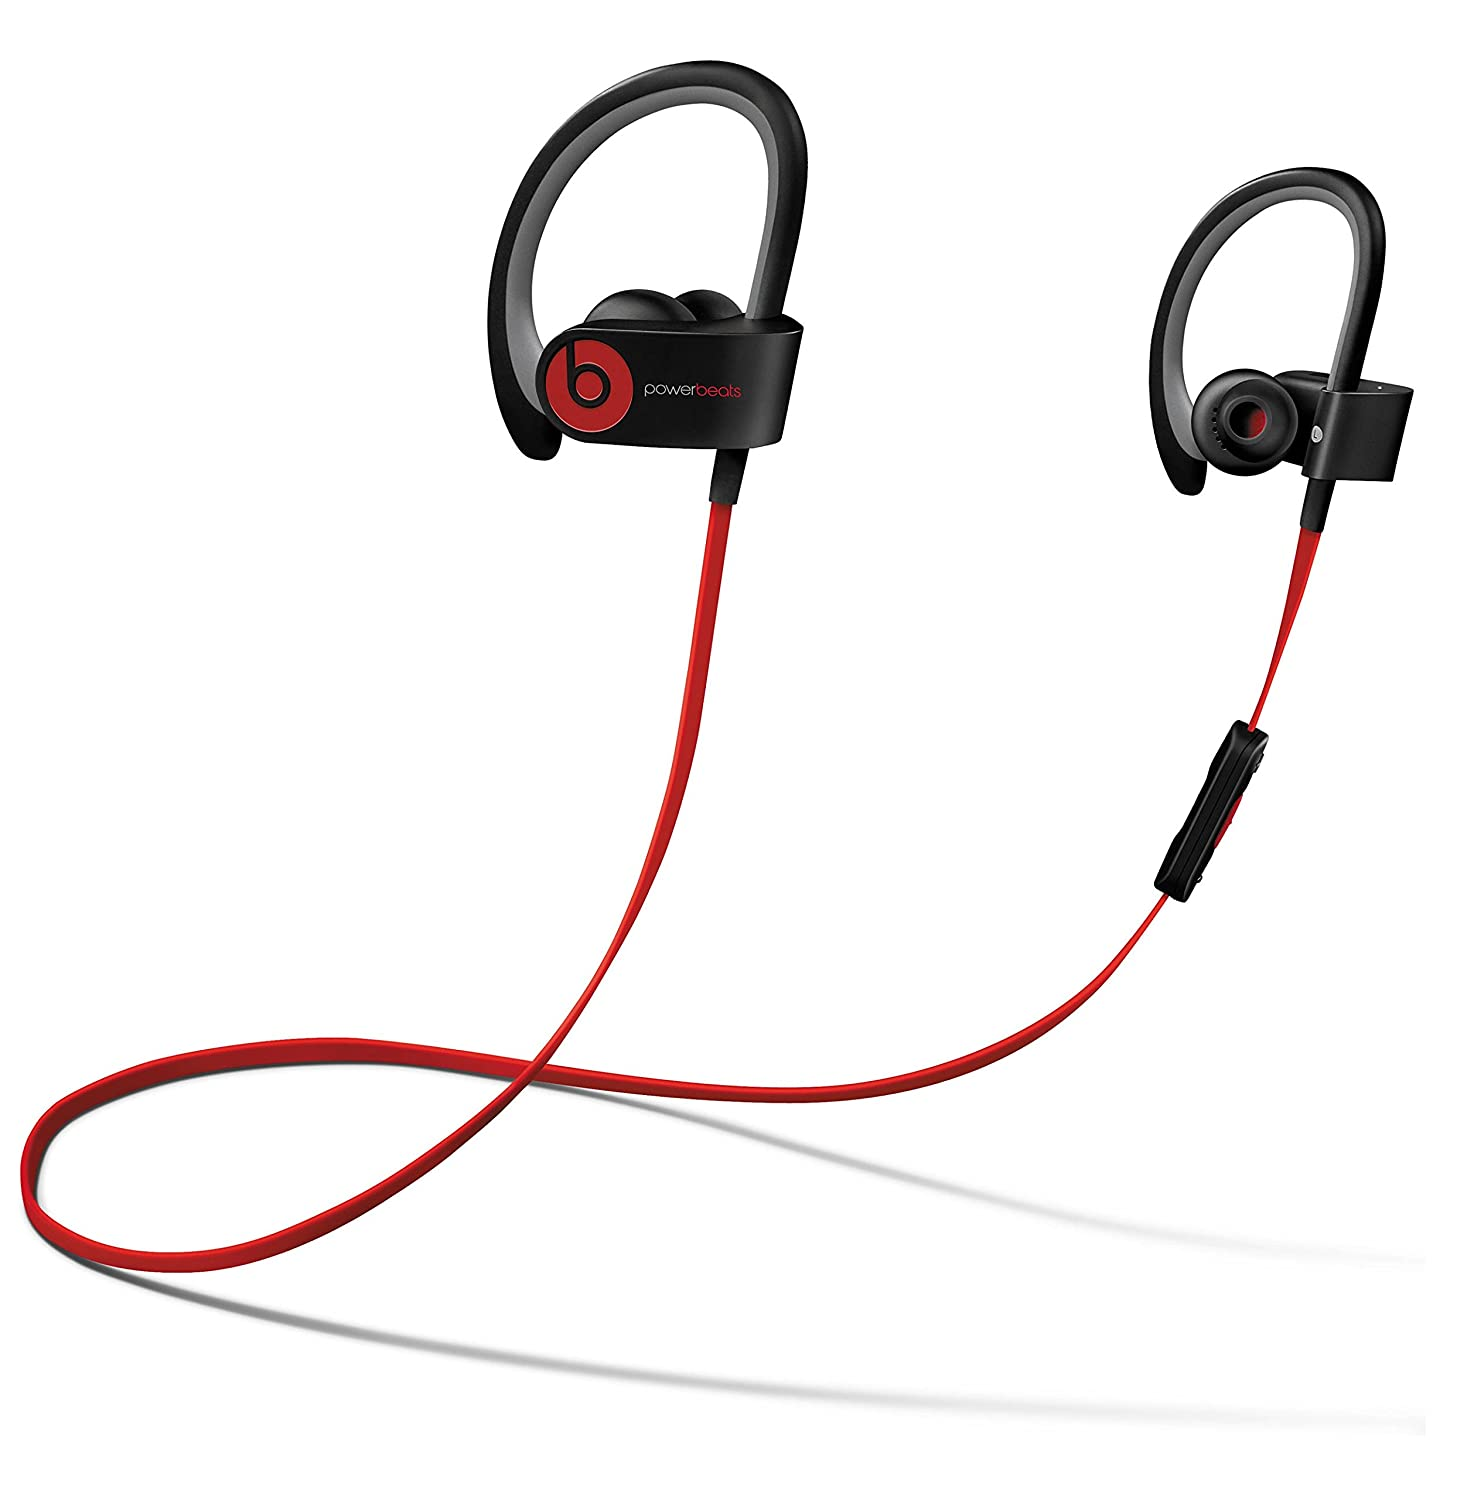 Amazon.com  Beats by Dr dre Powerbeats2 Wireless In-Ear Bluetooth Headphone  with Mic - Black (Renewed)  Home Audio   Theater 35b87eaf59